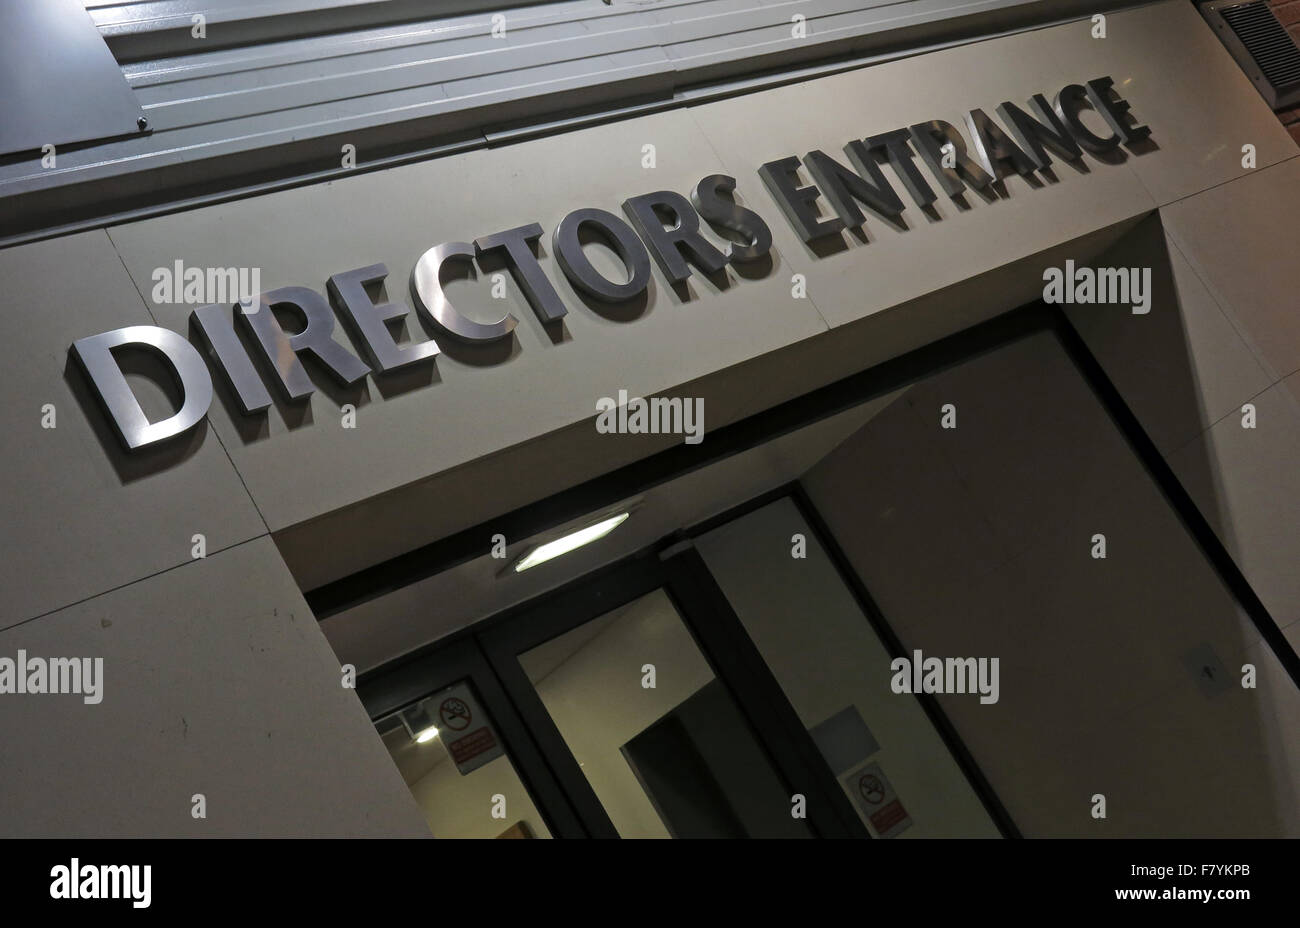 The Manchester United FC Directors Entrance, Old Trafford,Manchester,England,UK - Stock Image